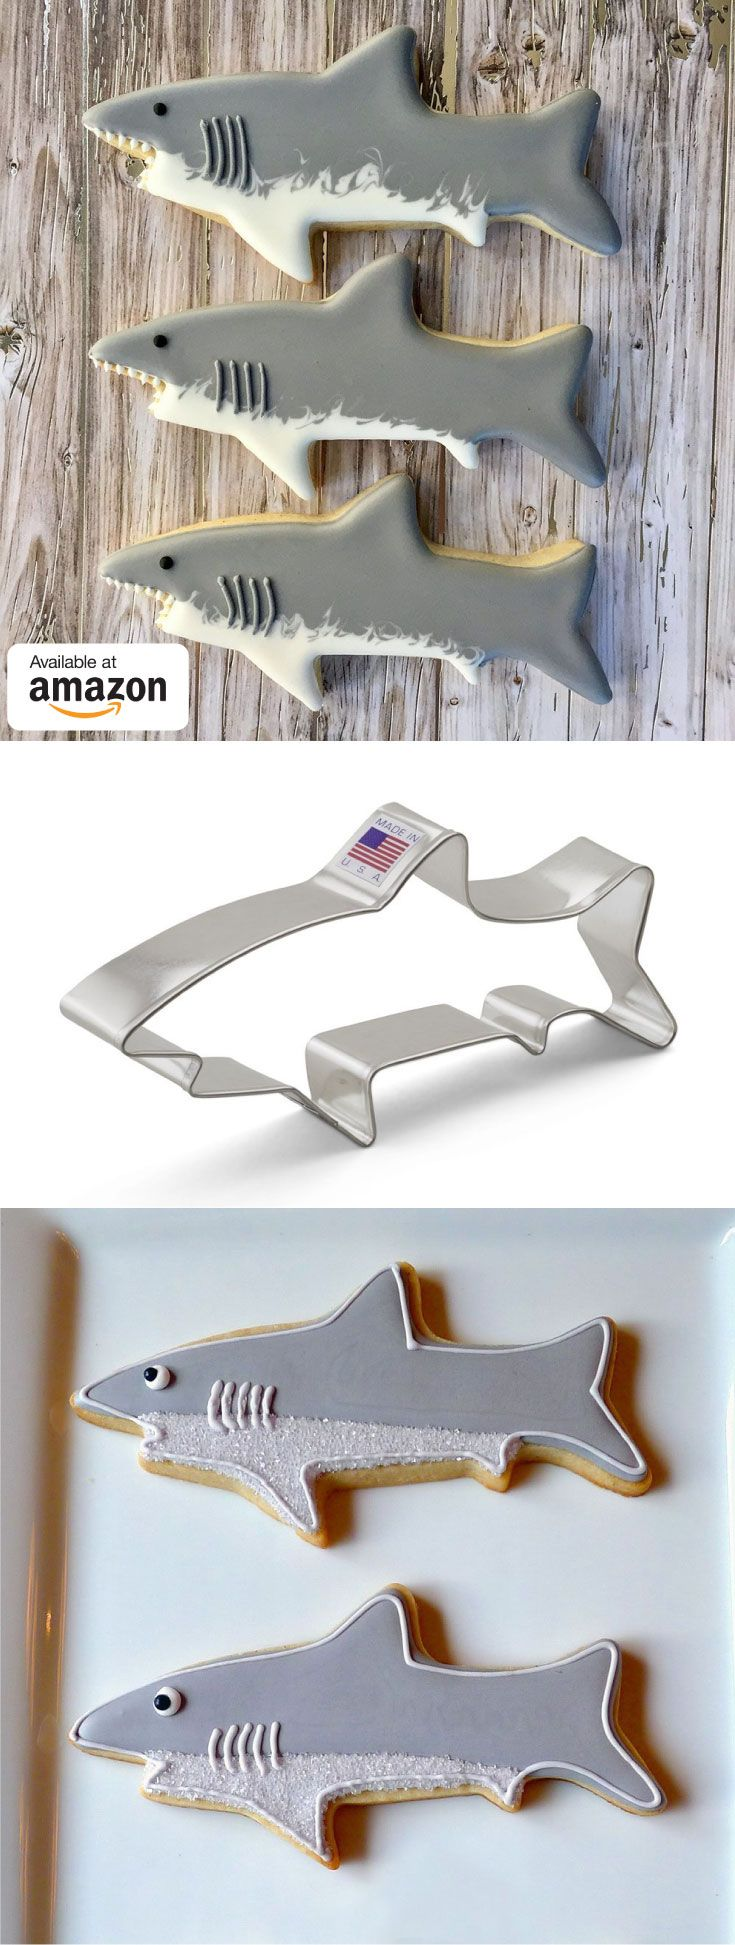 Shark cookie cutter perfect for shark week! These are Prime